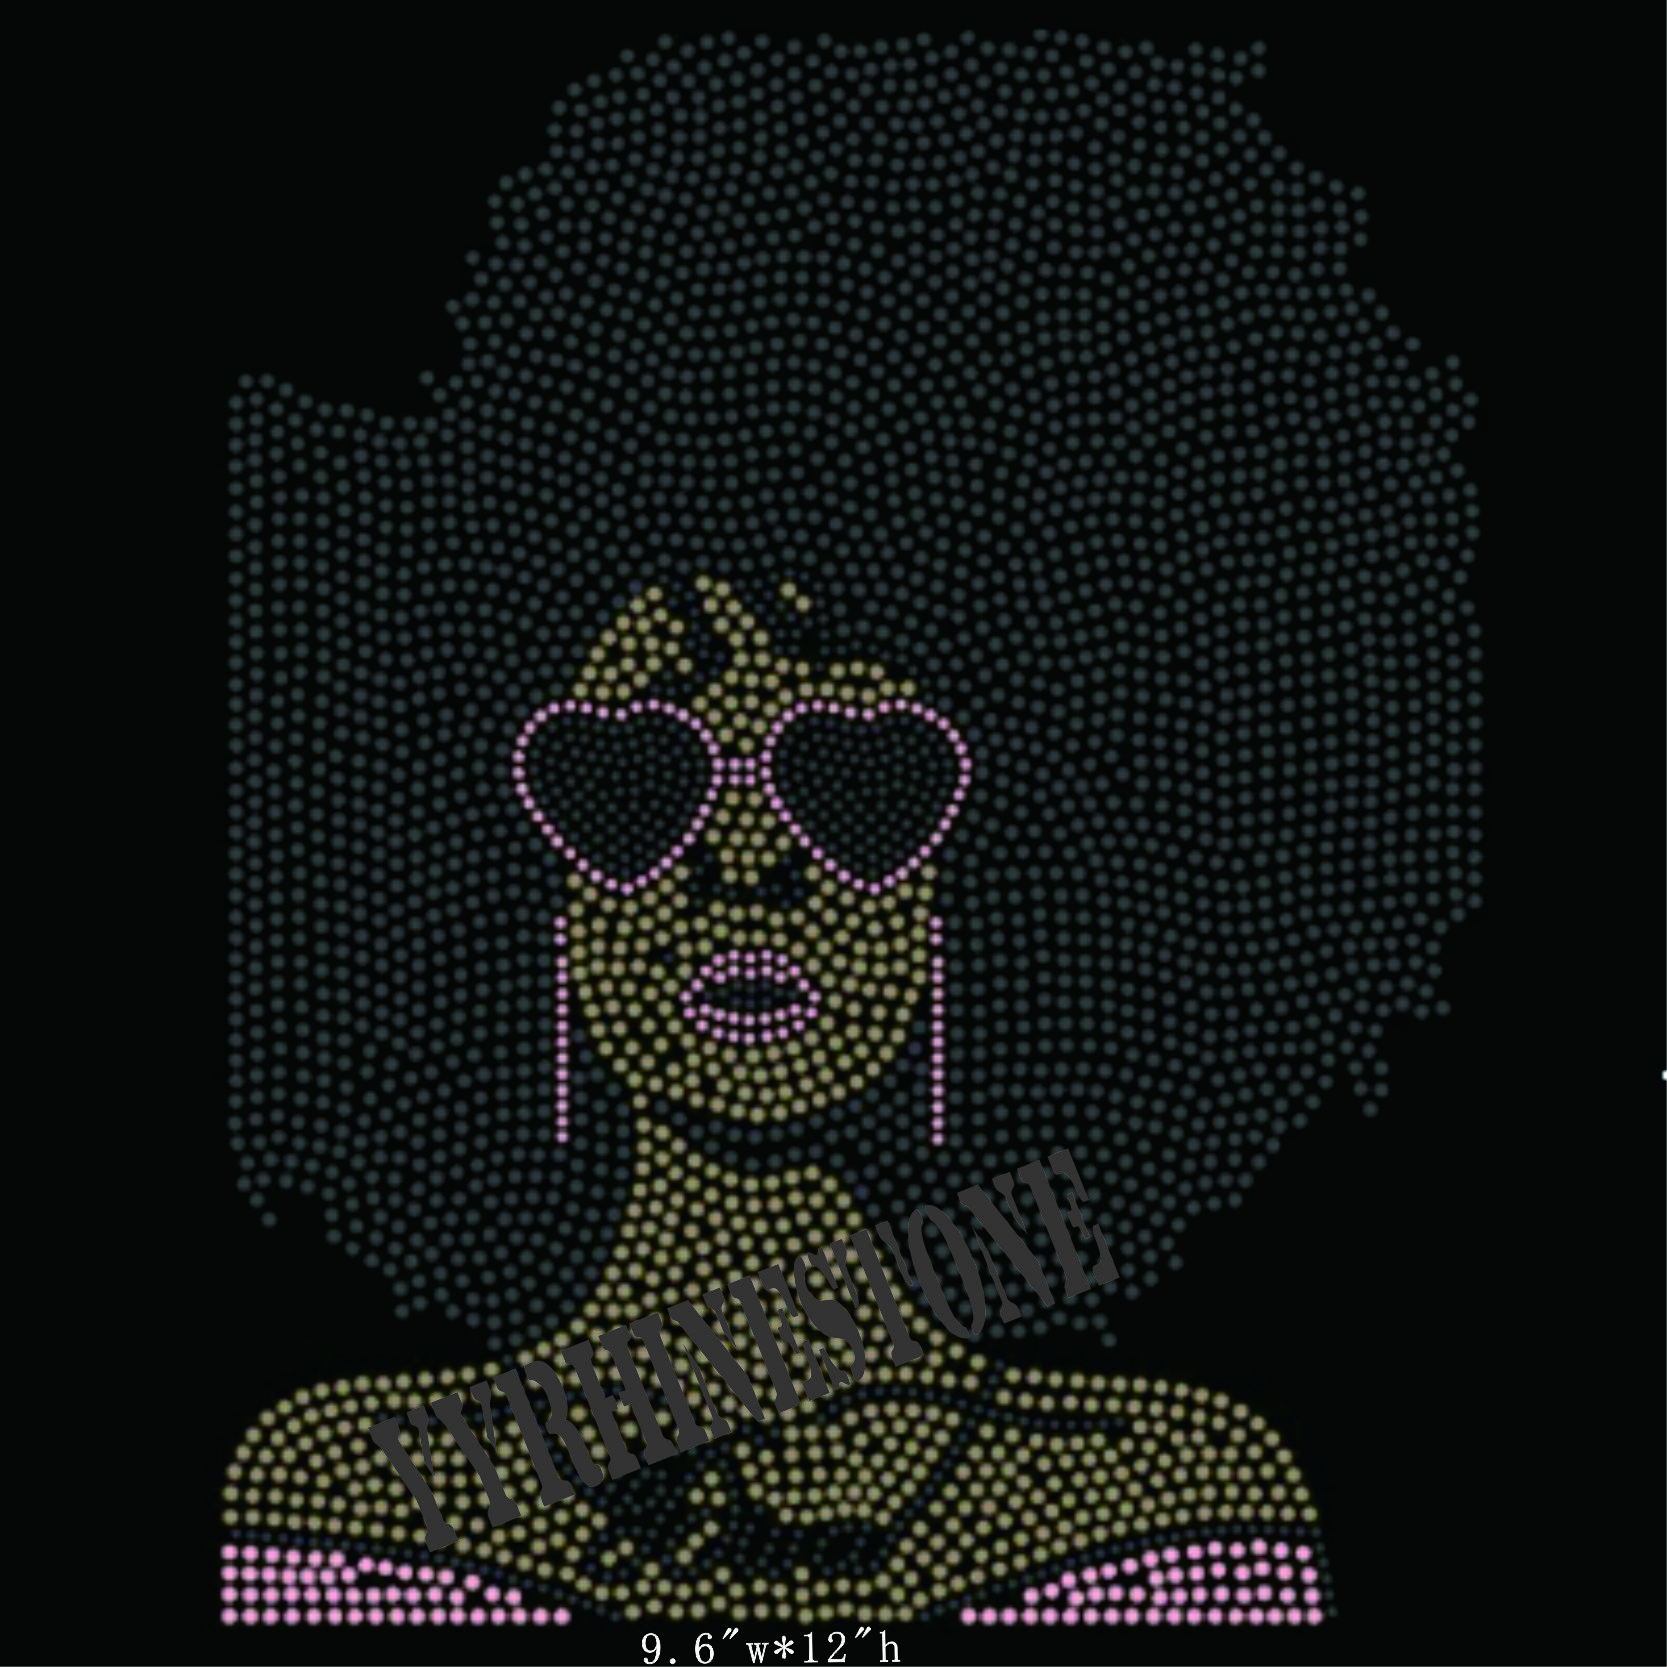 Afro girl lady hotfix rhinestone transfer